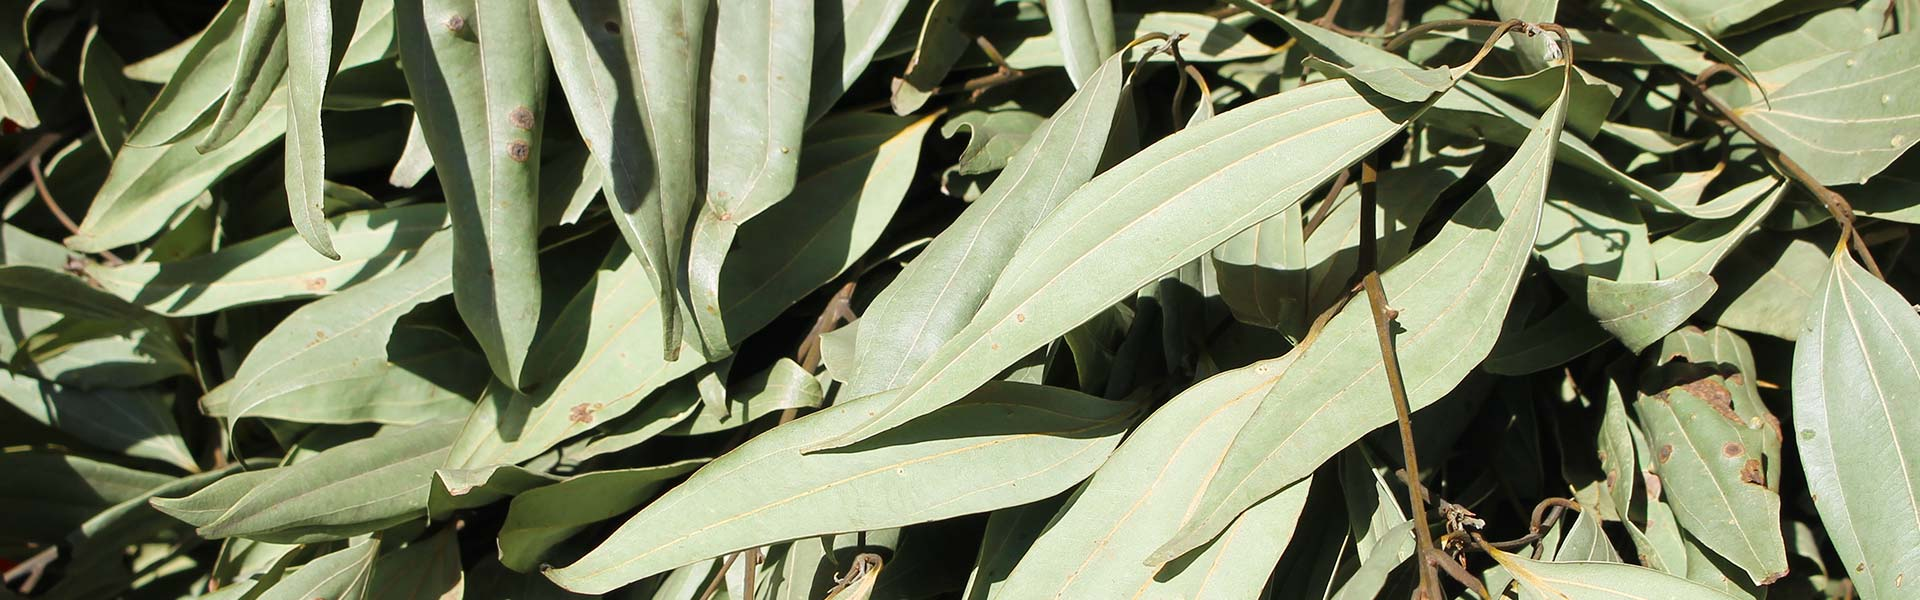 5 Interesting Facts About Bay Leaf Family